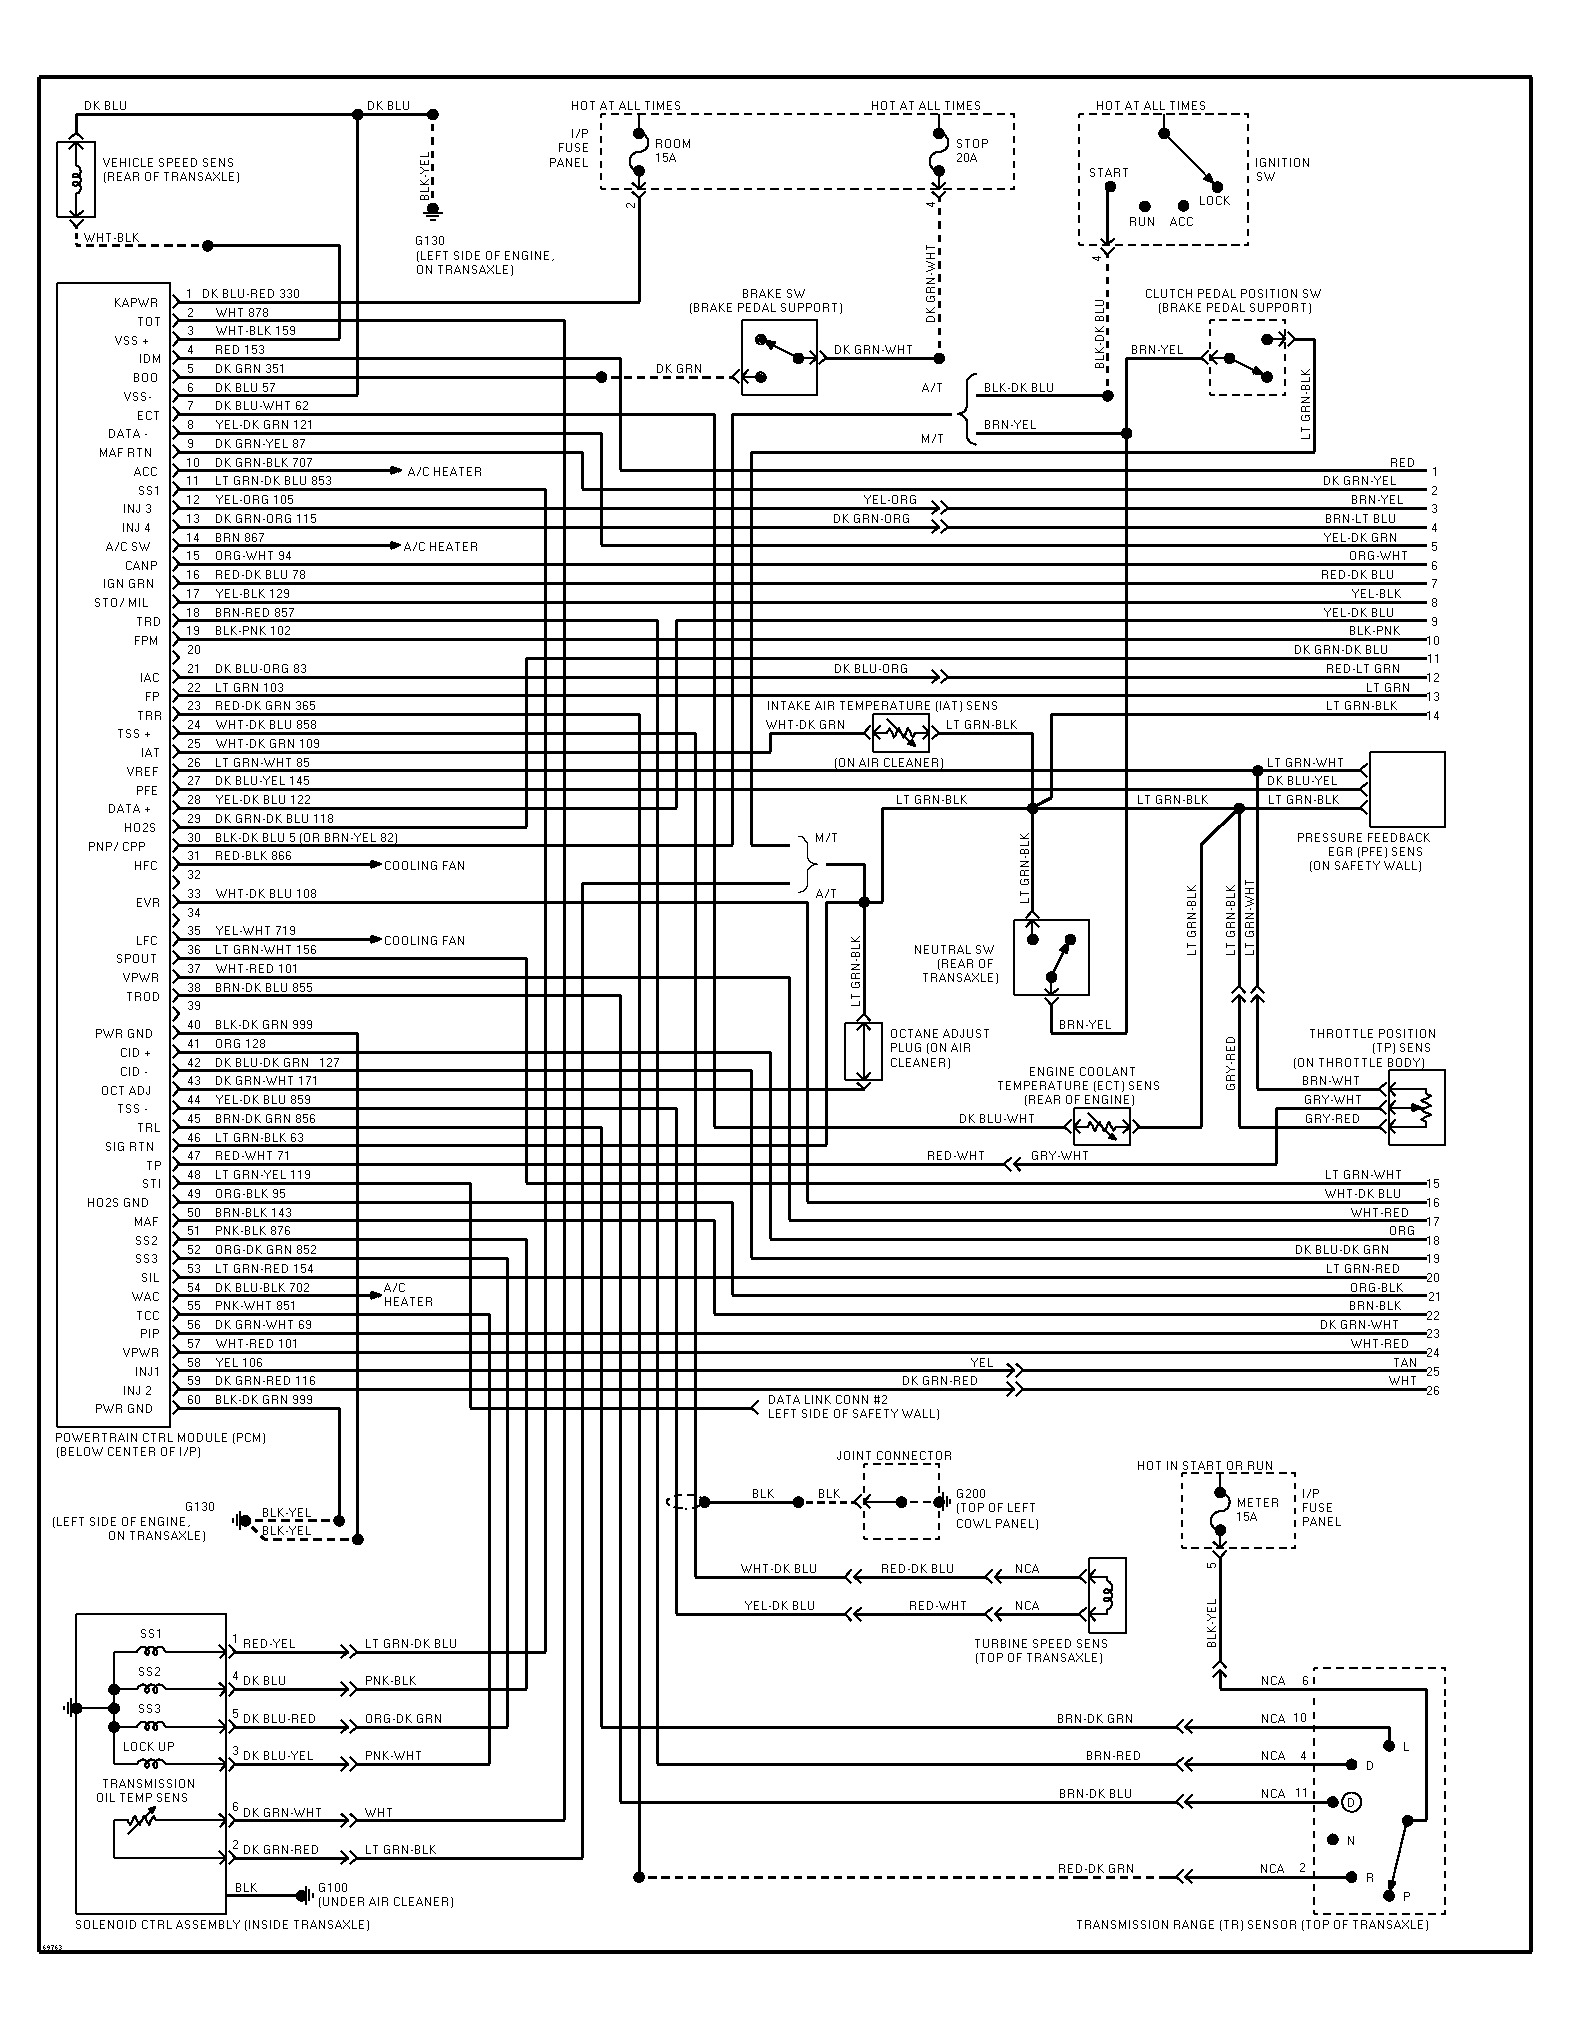 1995 Ford Escort Wiring Diagram: I Just Found Out the Unit I Need ...